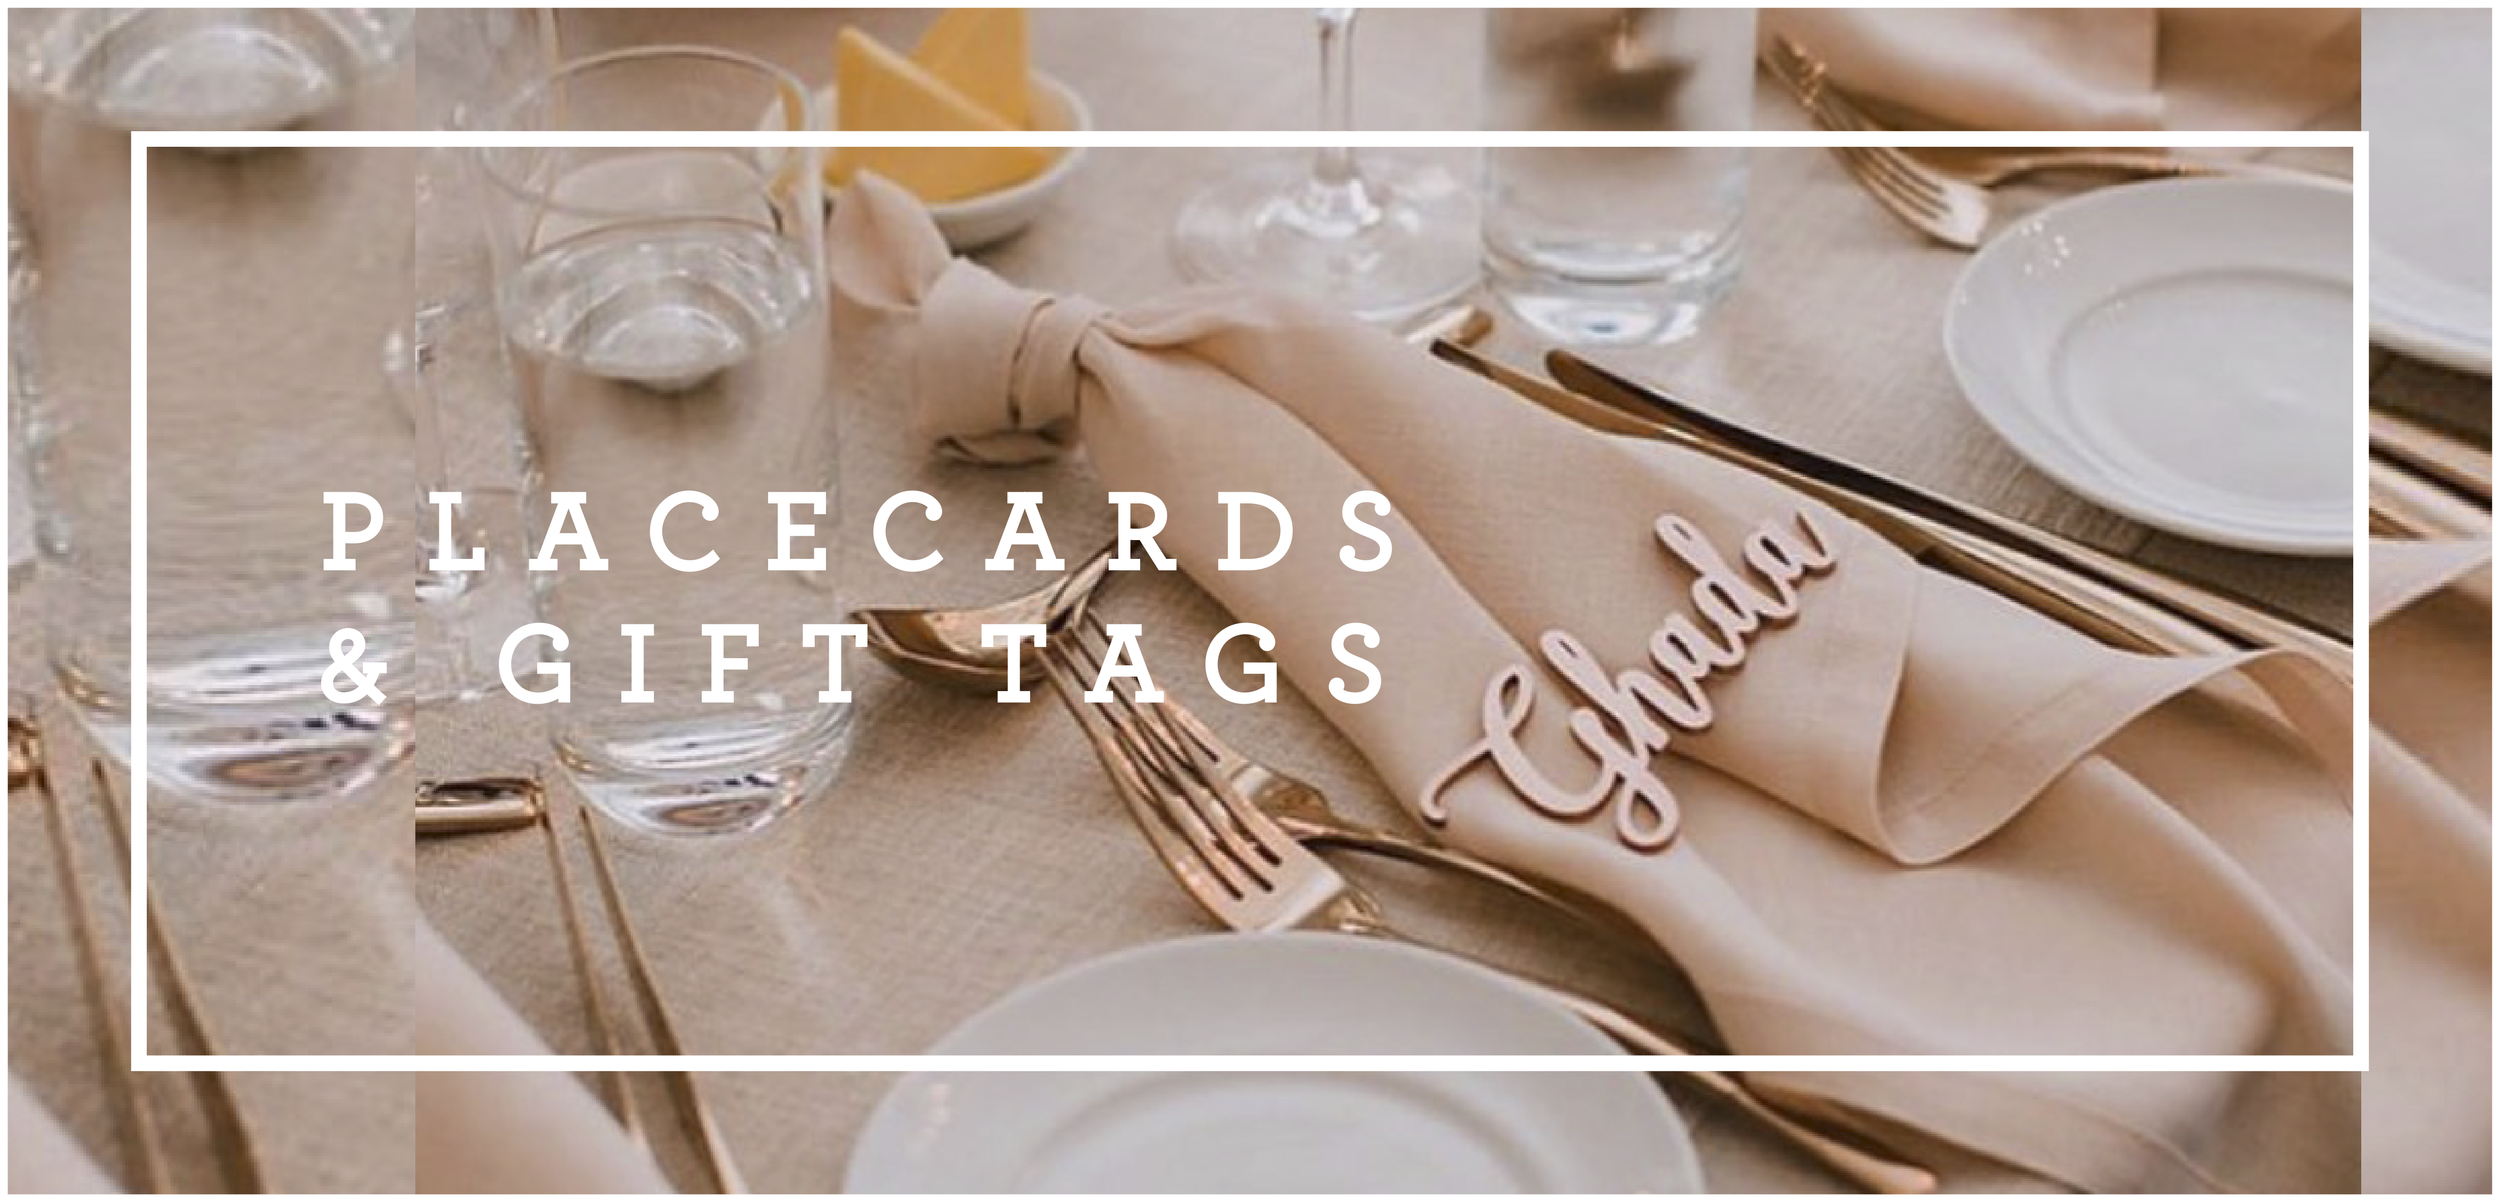 PLACECARDS, GIFT TAGS, PARTY DECOR